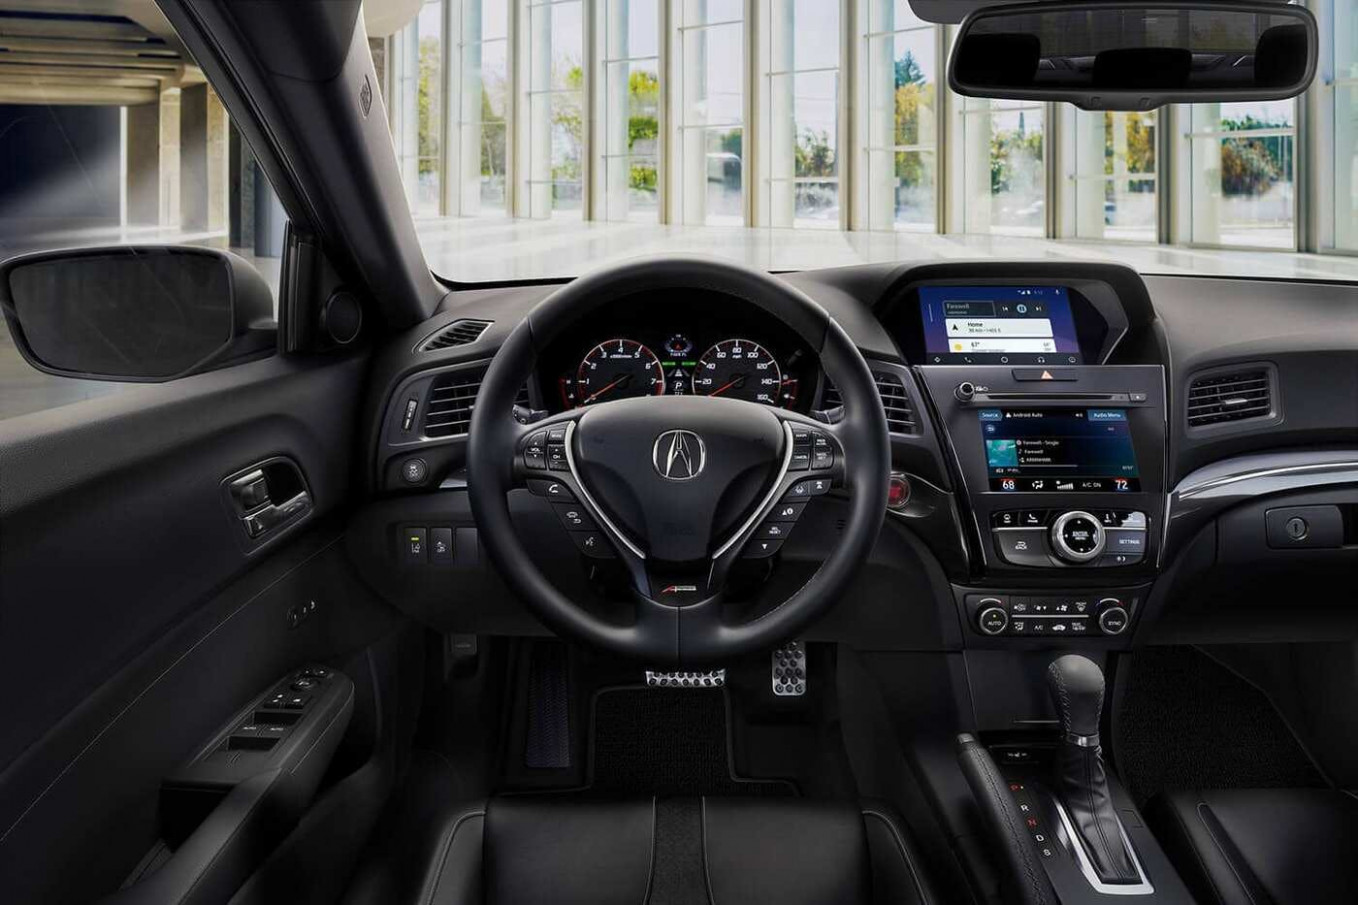 6 Acura ILX Comparisons, Reviews & Pictures | TrueCar - 2020 acura ilx interior